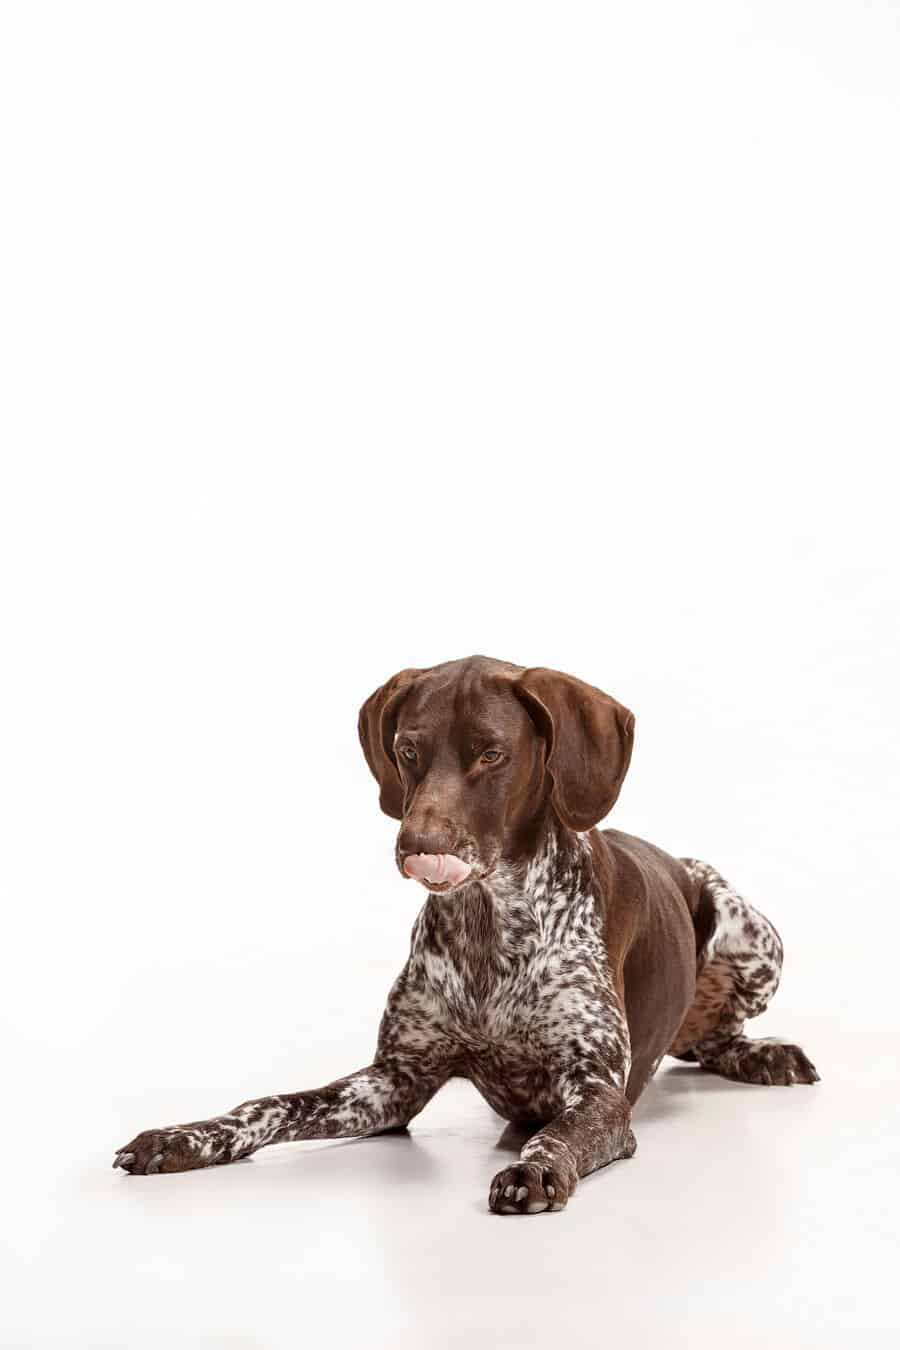 Are Pointers Good Service Dogs?